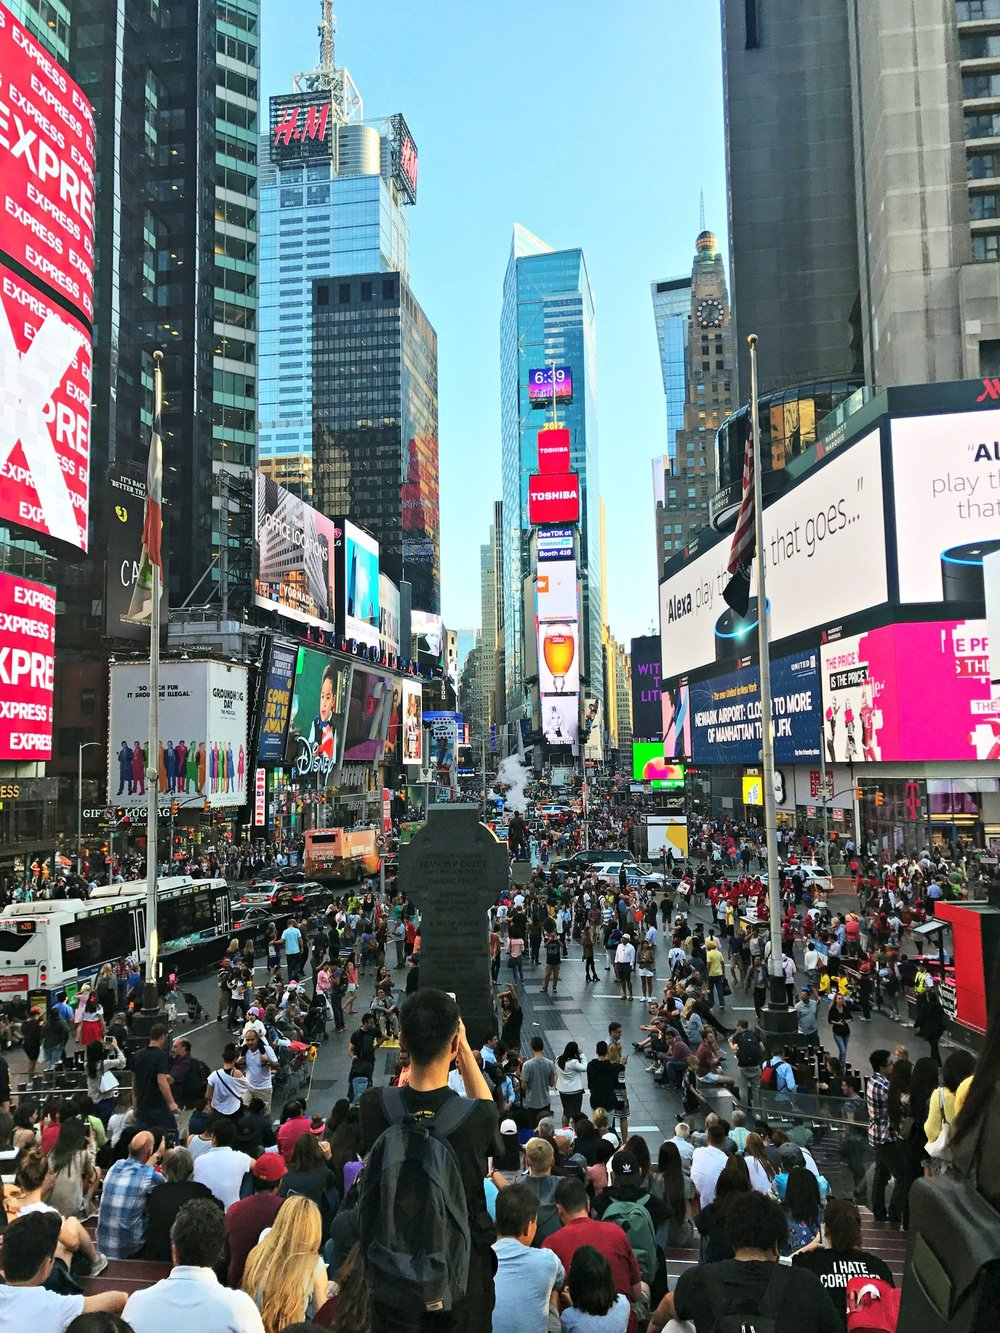 Times+Square+New+York+City+mother+daughter+teenager+trip.jpg